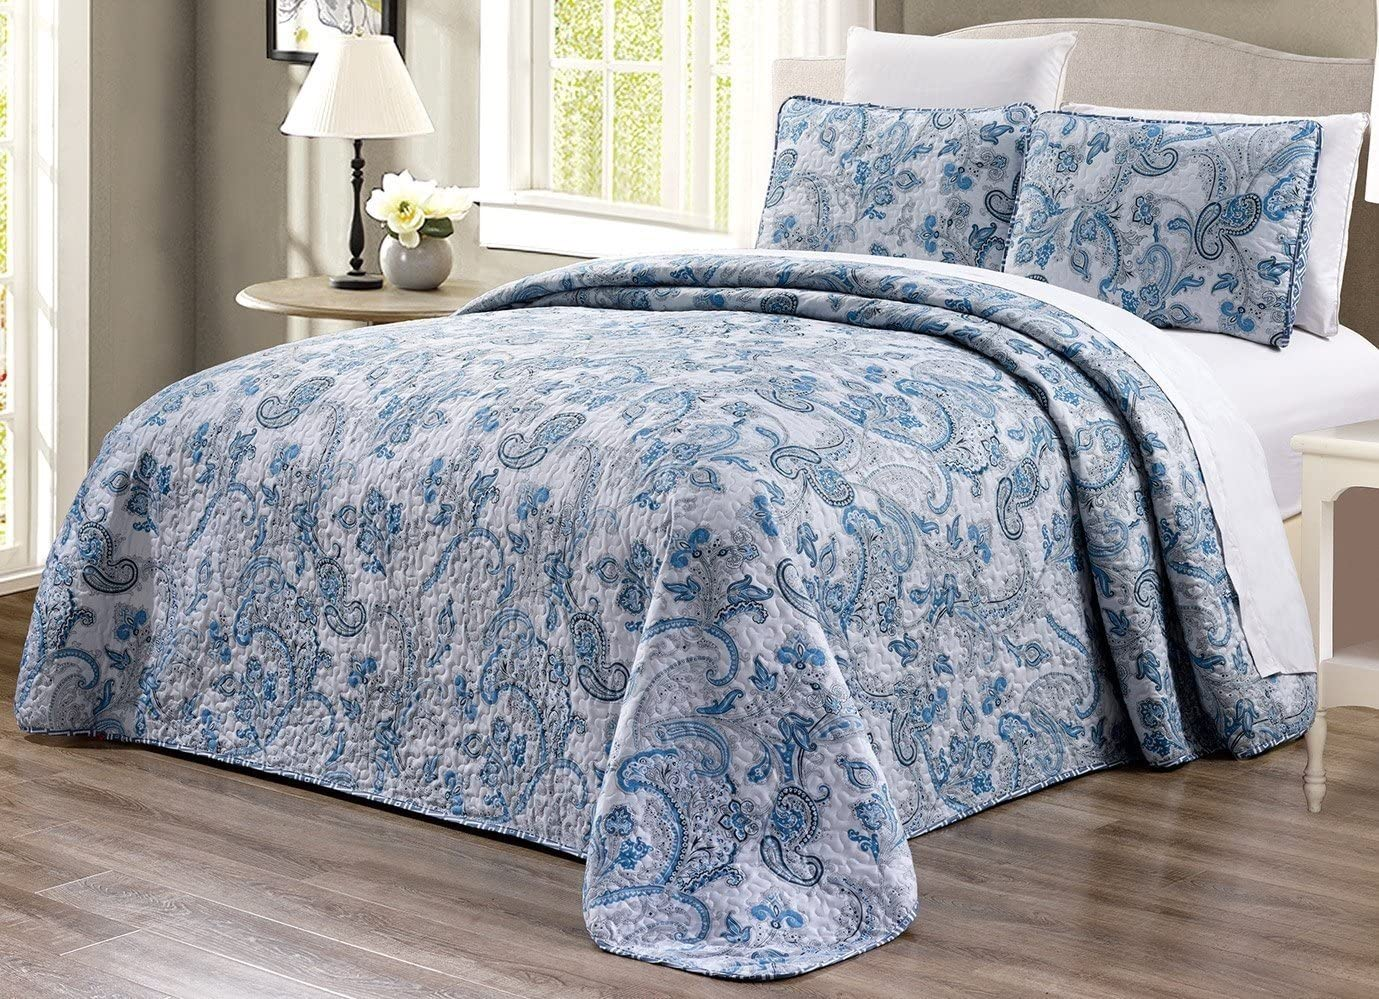 3 Piece Oversize 115 X 95 Fine Printed Prewashed All Season Quilt Set Reversible Bedspread Coverlet King Size Bed Cover Grey Black White Blue Paisley Kitchen Dining